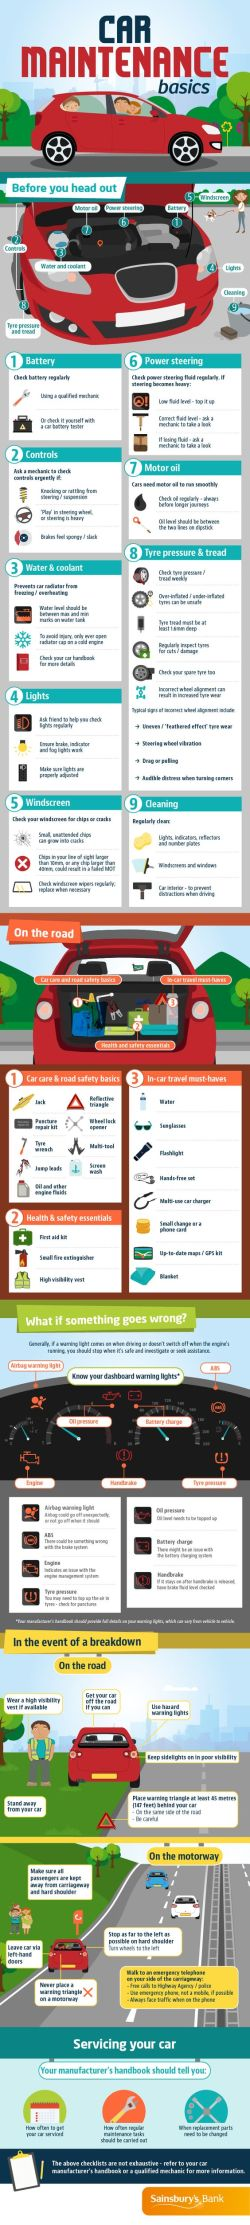 Basic car maintenance - Everything you need to know